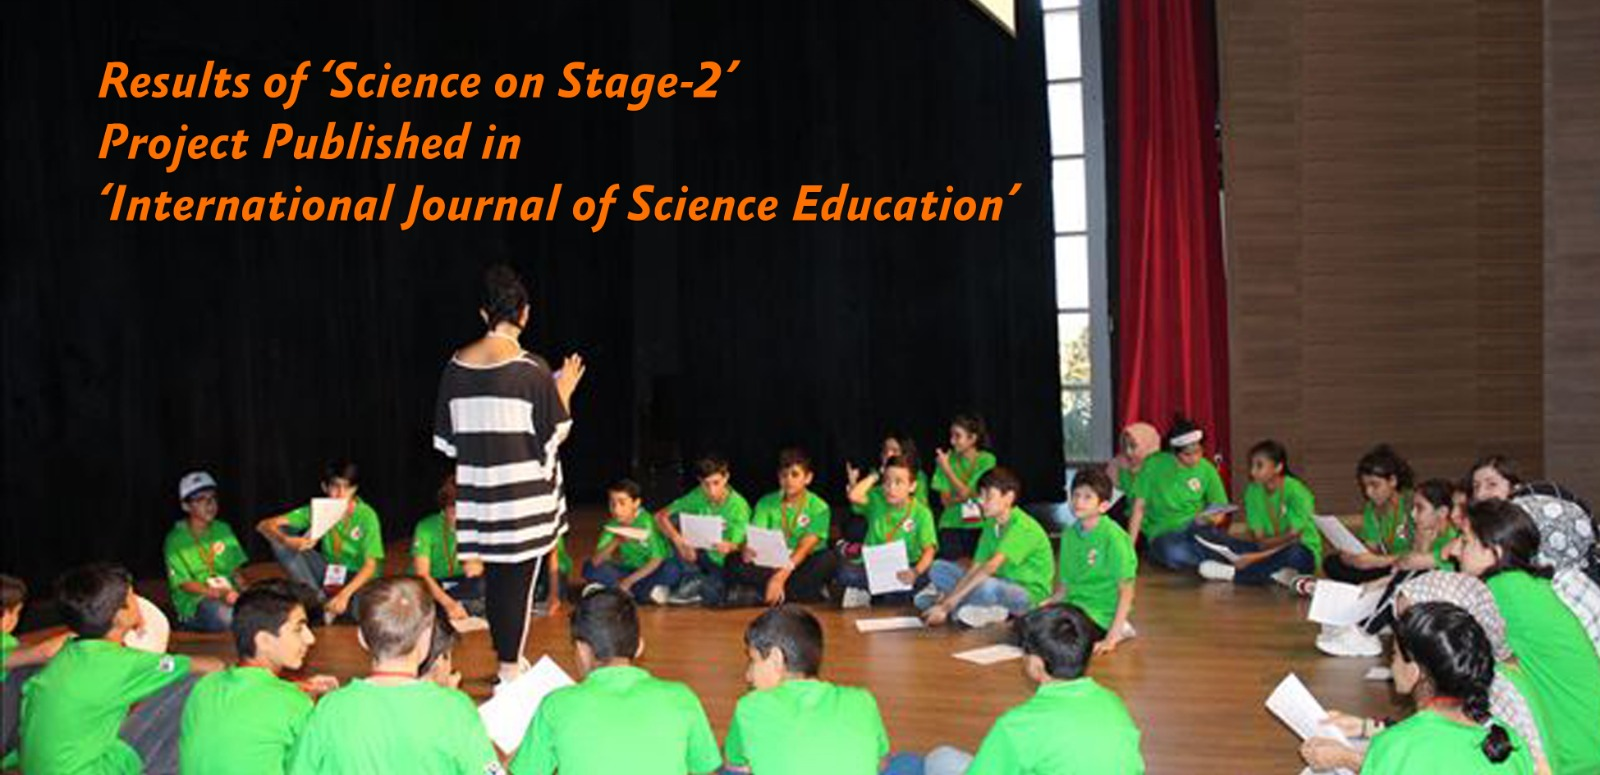 results-of-science-on-stage-2-project-published-in-international-journal-of-science-education-868